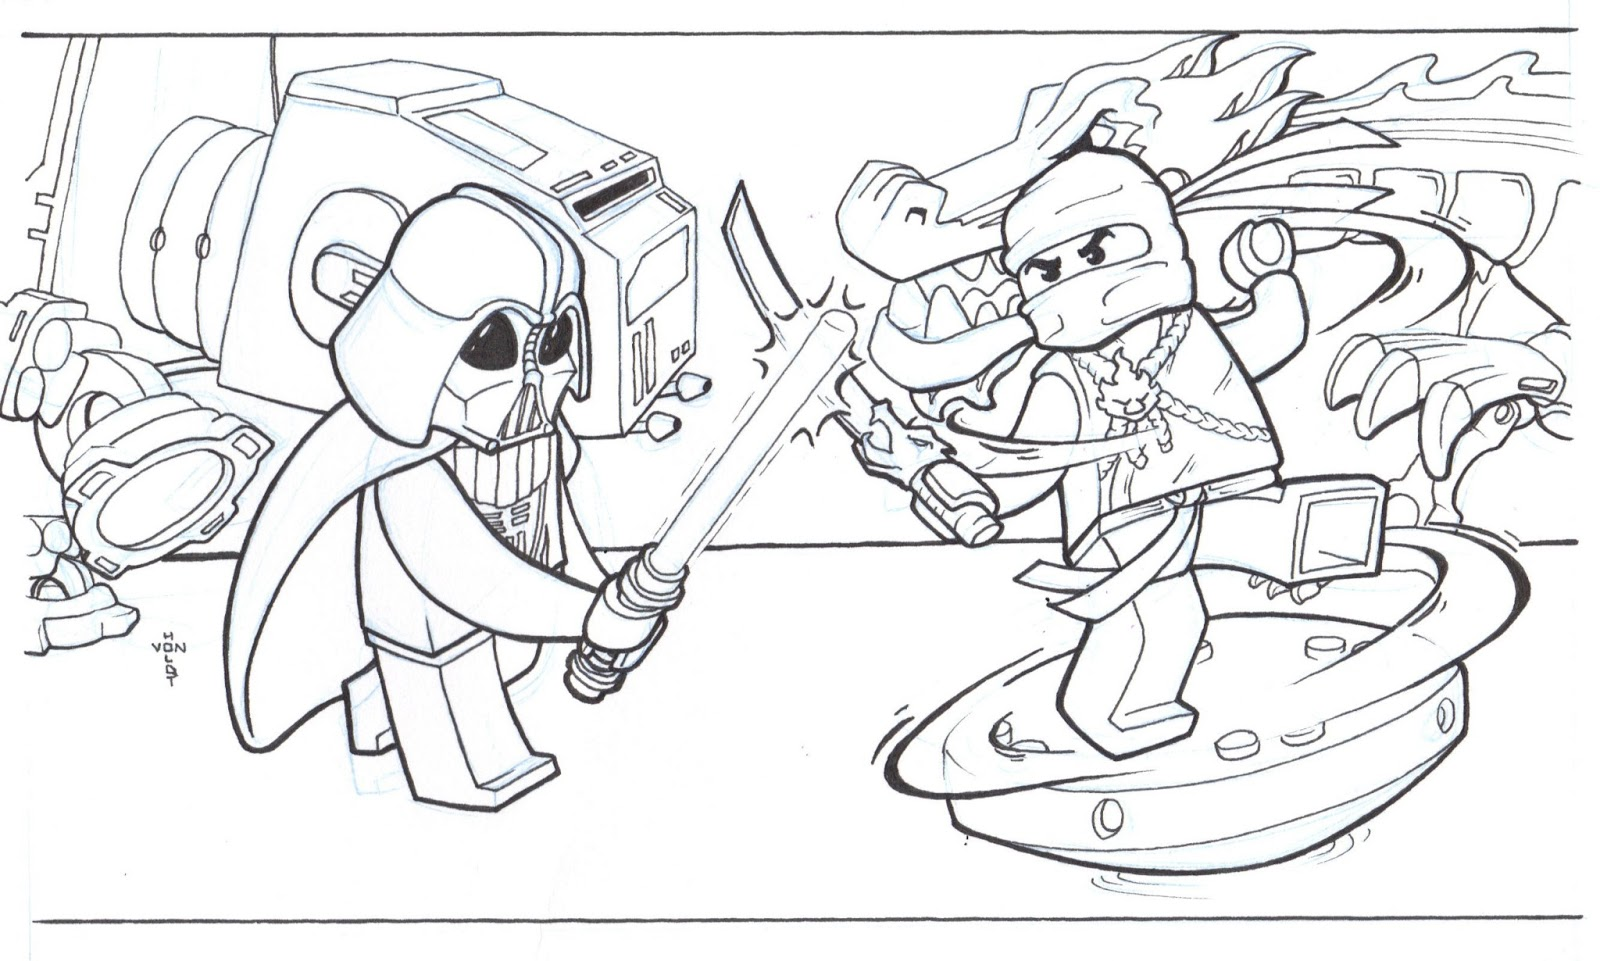 Lego Ninjago Coloring Pages Free Printable Pictures Lego Colouring Pages For